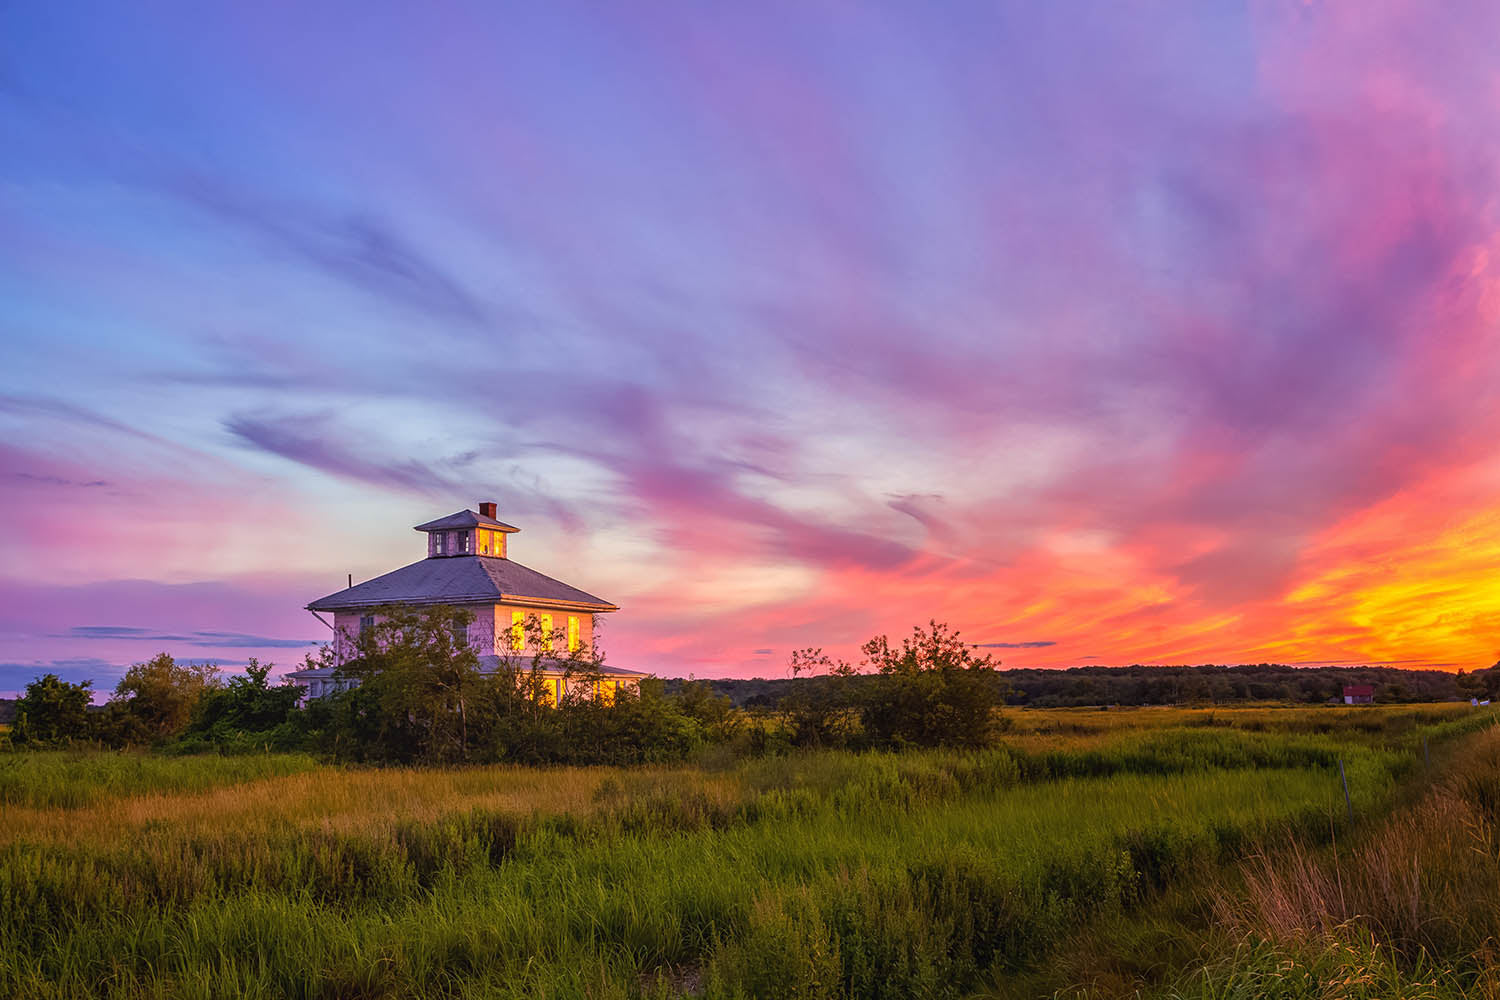 Landscape photograph of the Plum Island pink house at sunset in Newburyport, Massachusetts - by Jonathan Elcock